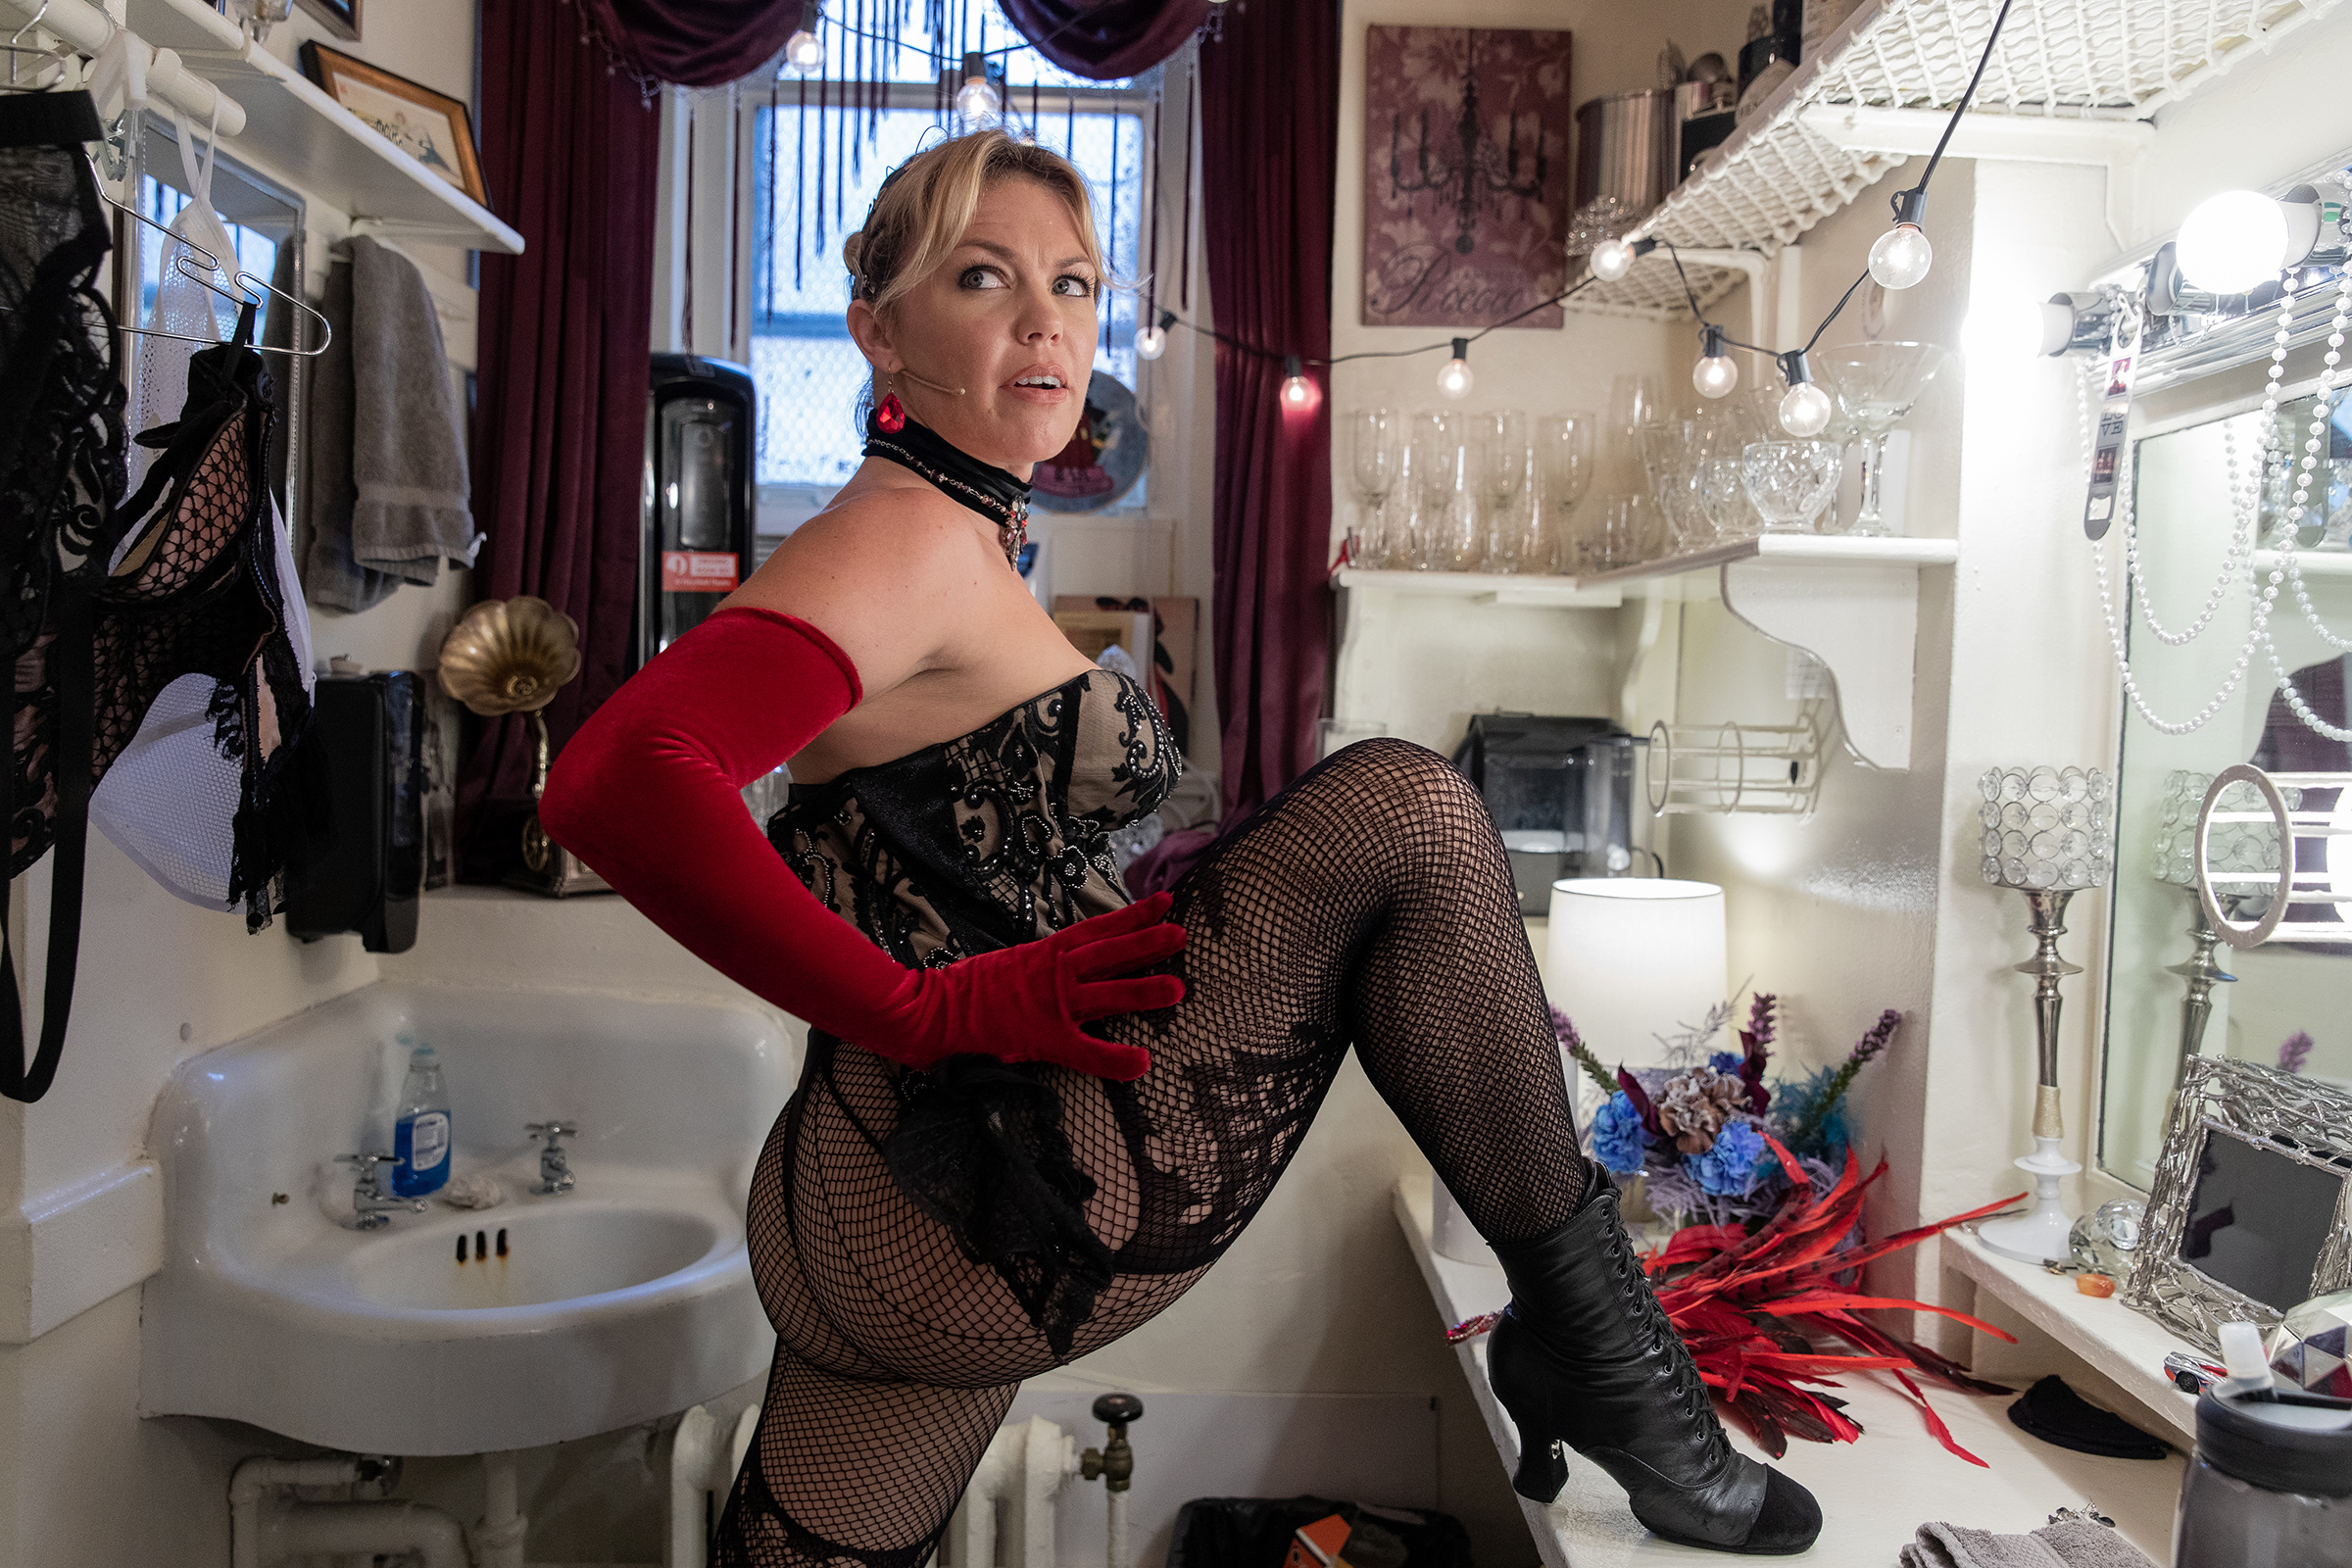 Actress Robyn Hurder who plays Nini in Moulin Rouge! The Musical stretches in her dressing room before a rehearsal in the theater on Sept. 21, 2021 in New York, NY. Hurder is one of the members of the cast and crew who battled covid-19.